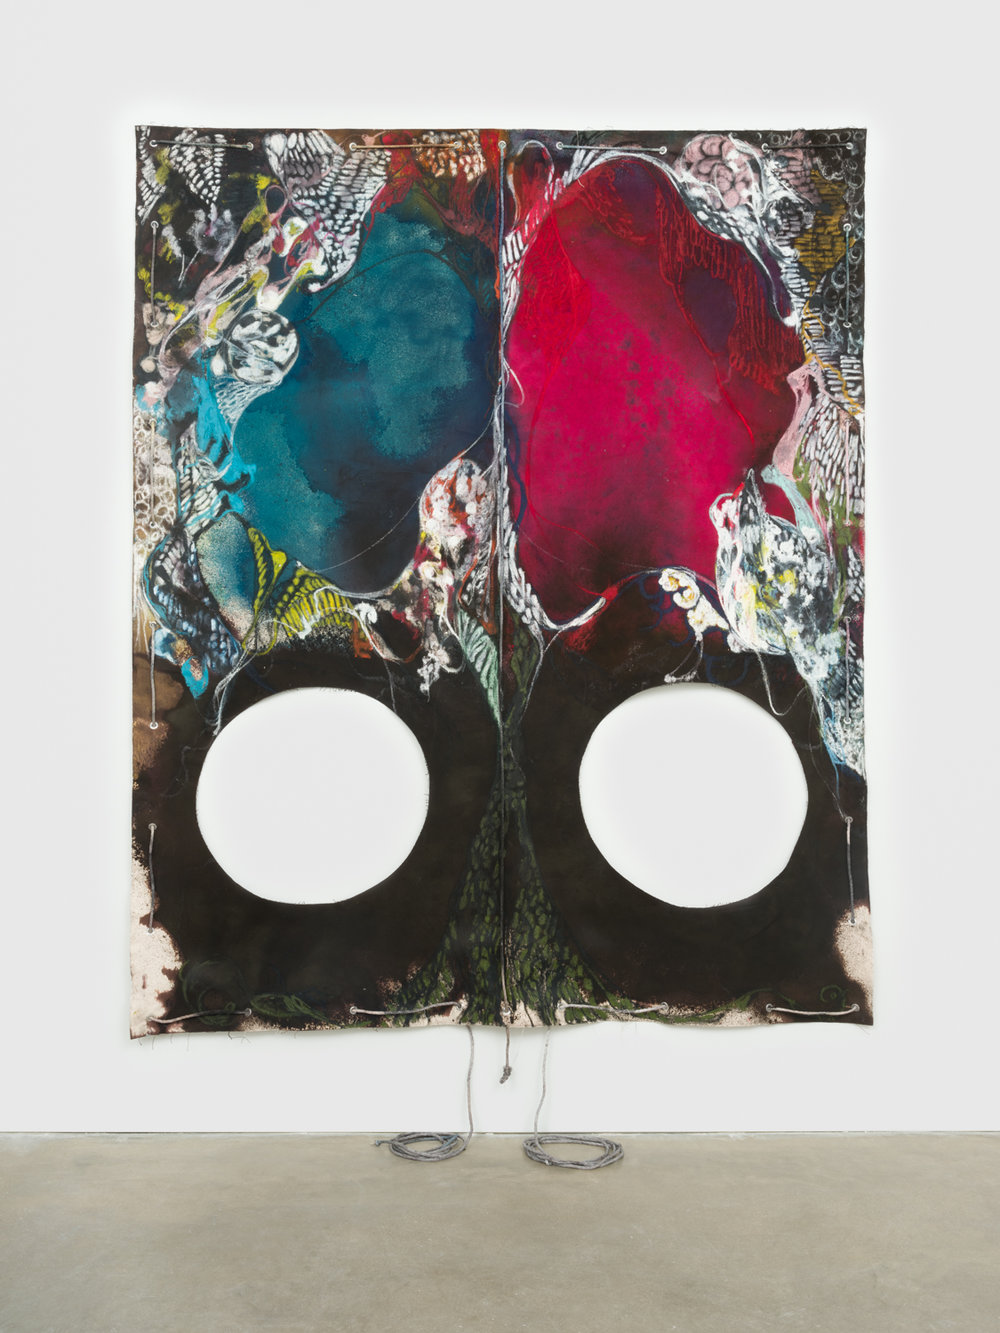 NaotakaHiro  Untitled (Welling)  2018 Canvas, fabric dye, oil pastel, rope and grommets 108h x 84w in NaoH039